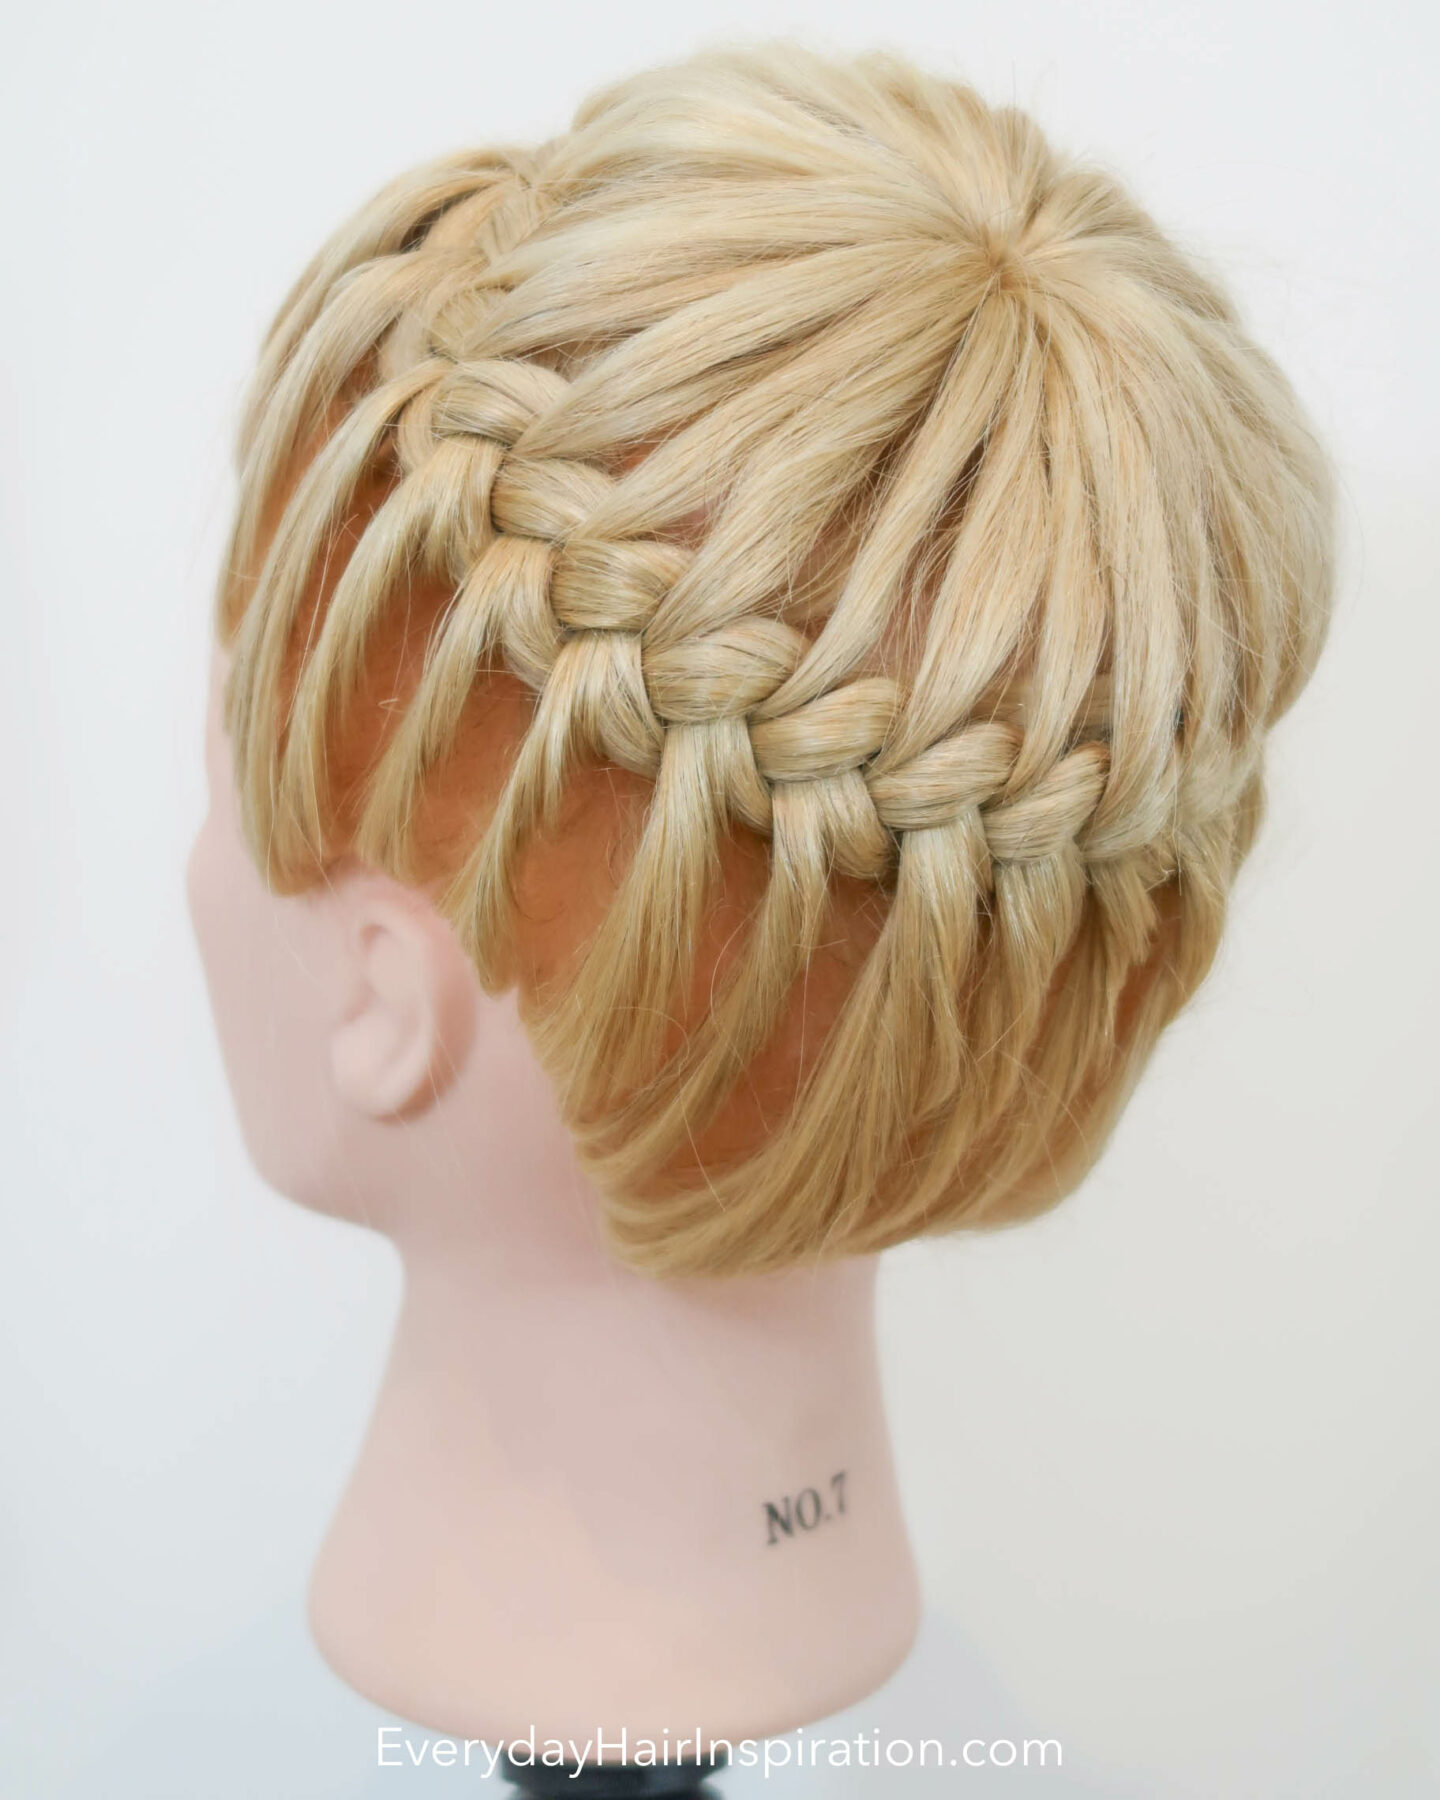 Blonde hairdresser doll seen from the side with a crown braid, braided in the hair.